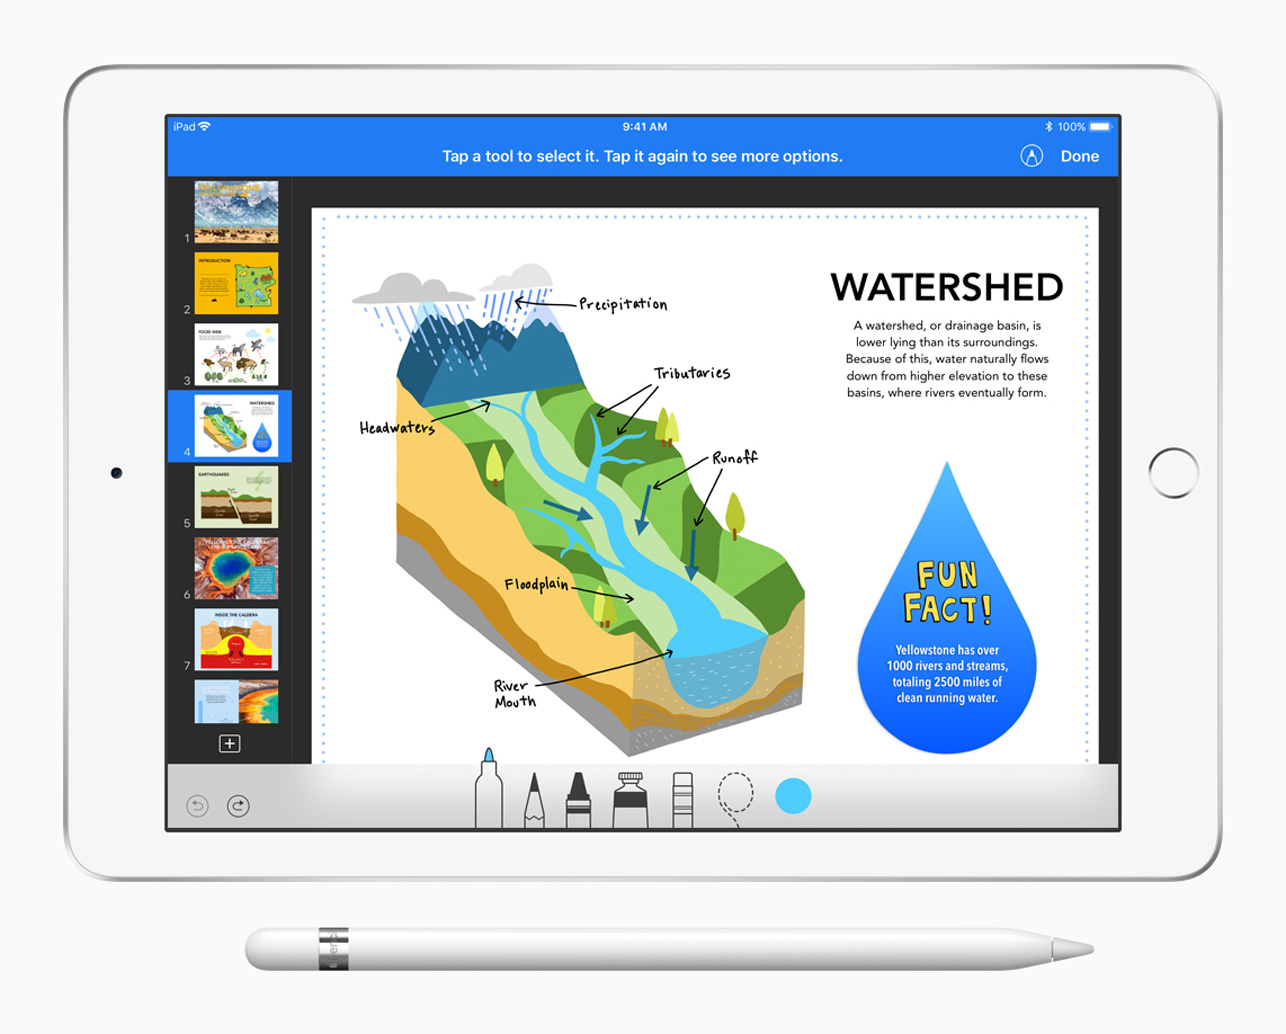 Apple iwork update water shed 032718 inline.jpg.large